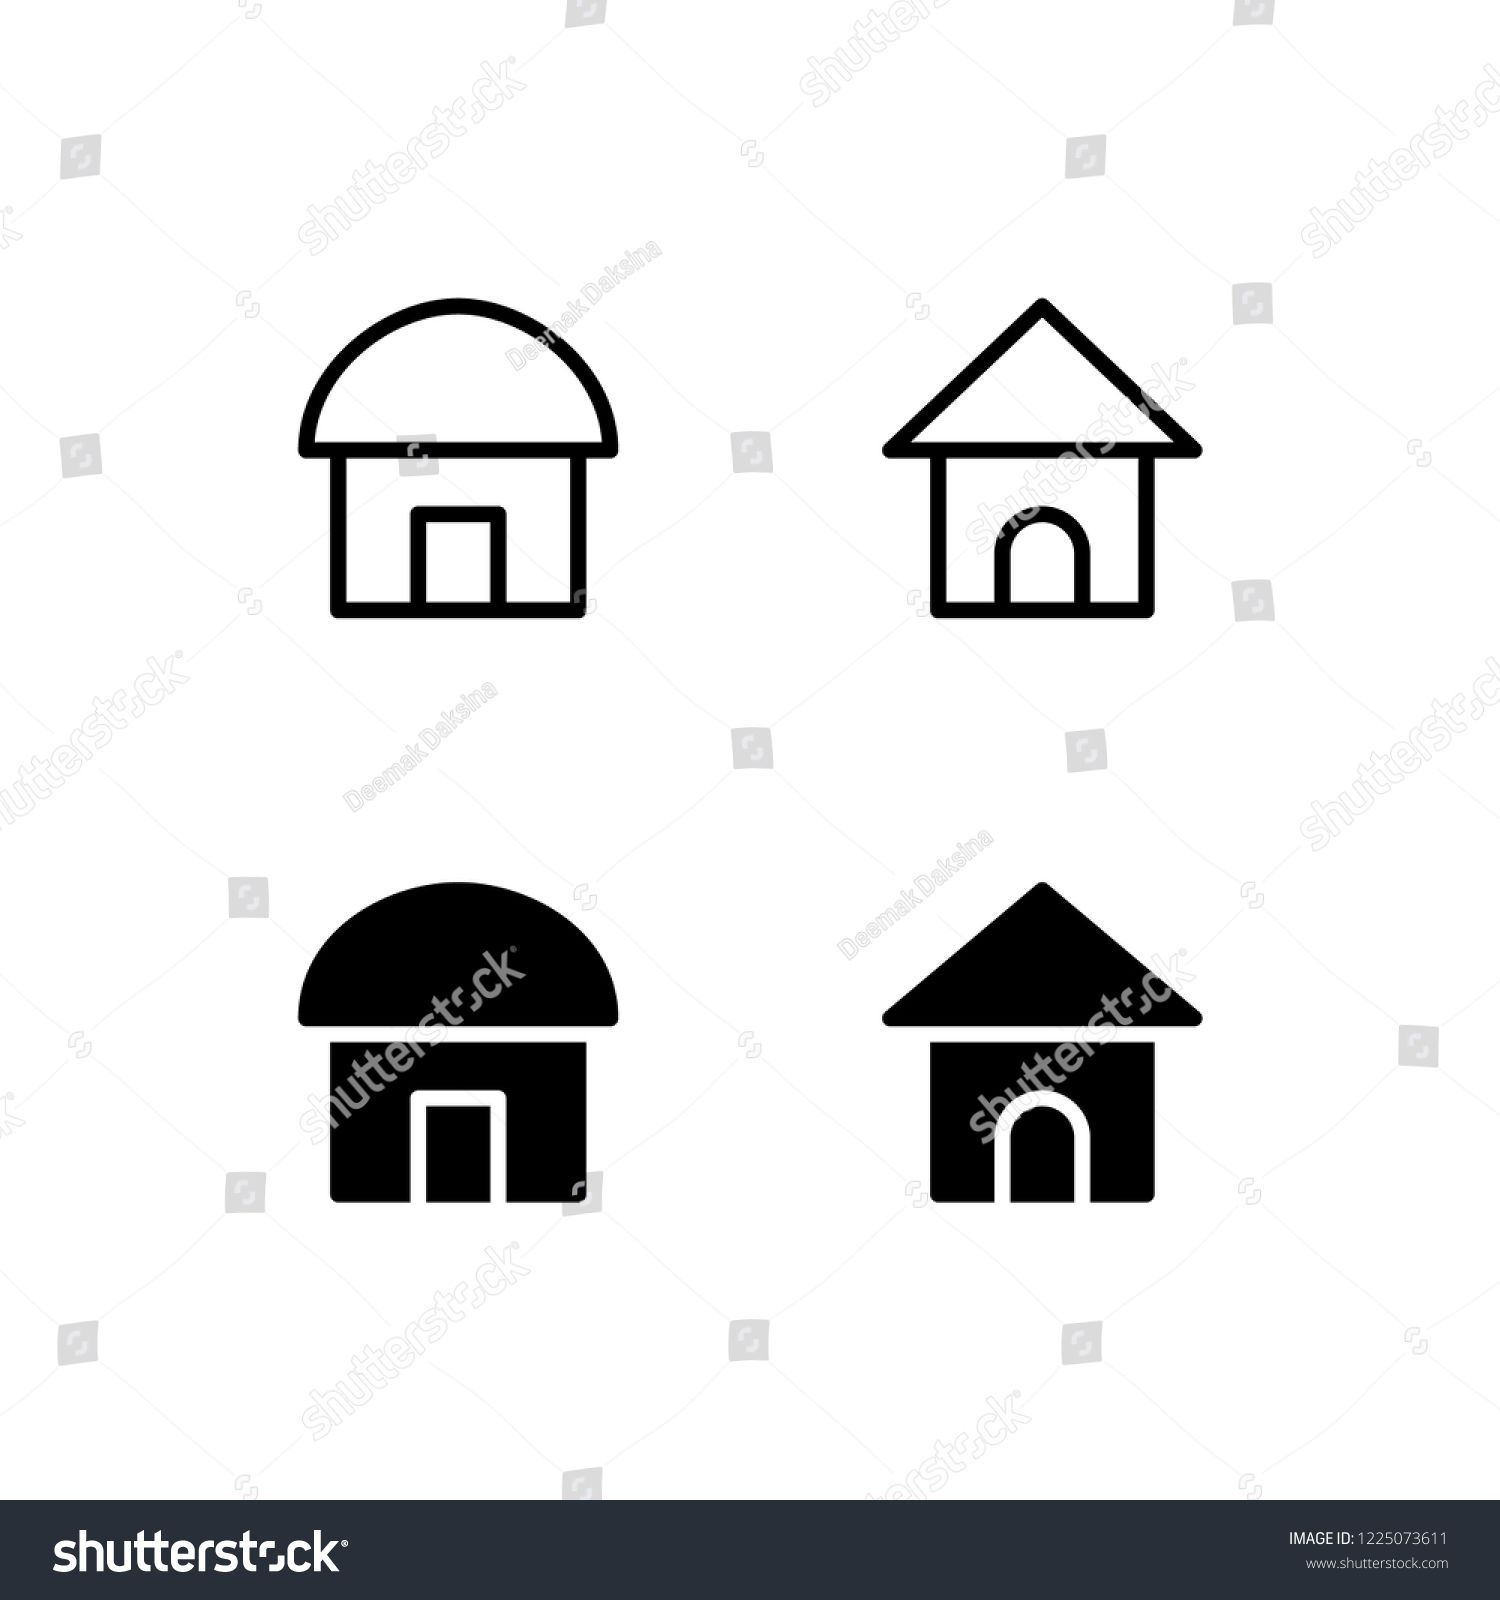 Hut House Logo: Hut Icon Design. Hut, House, Cottage, Shack, Home, Icon